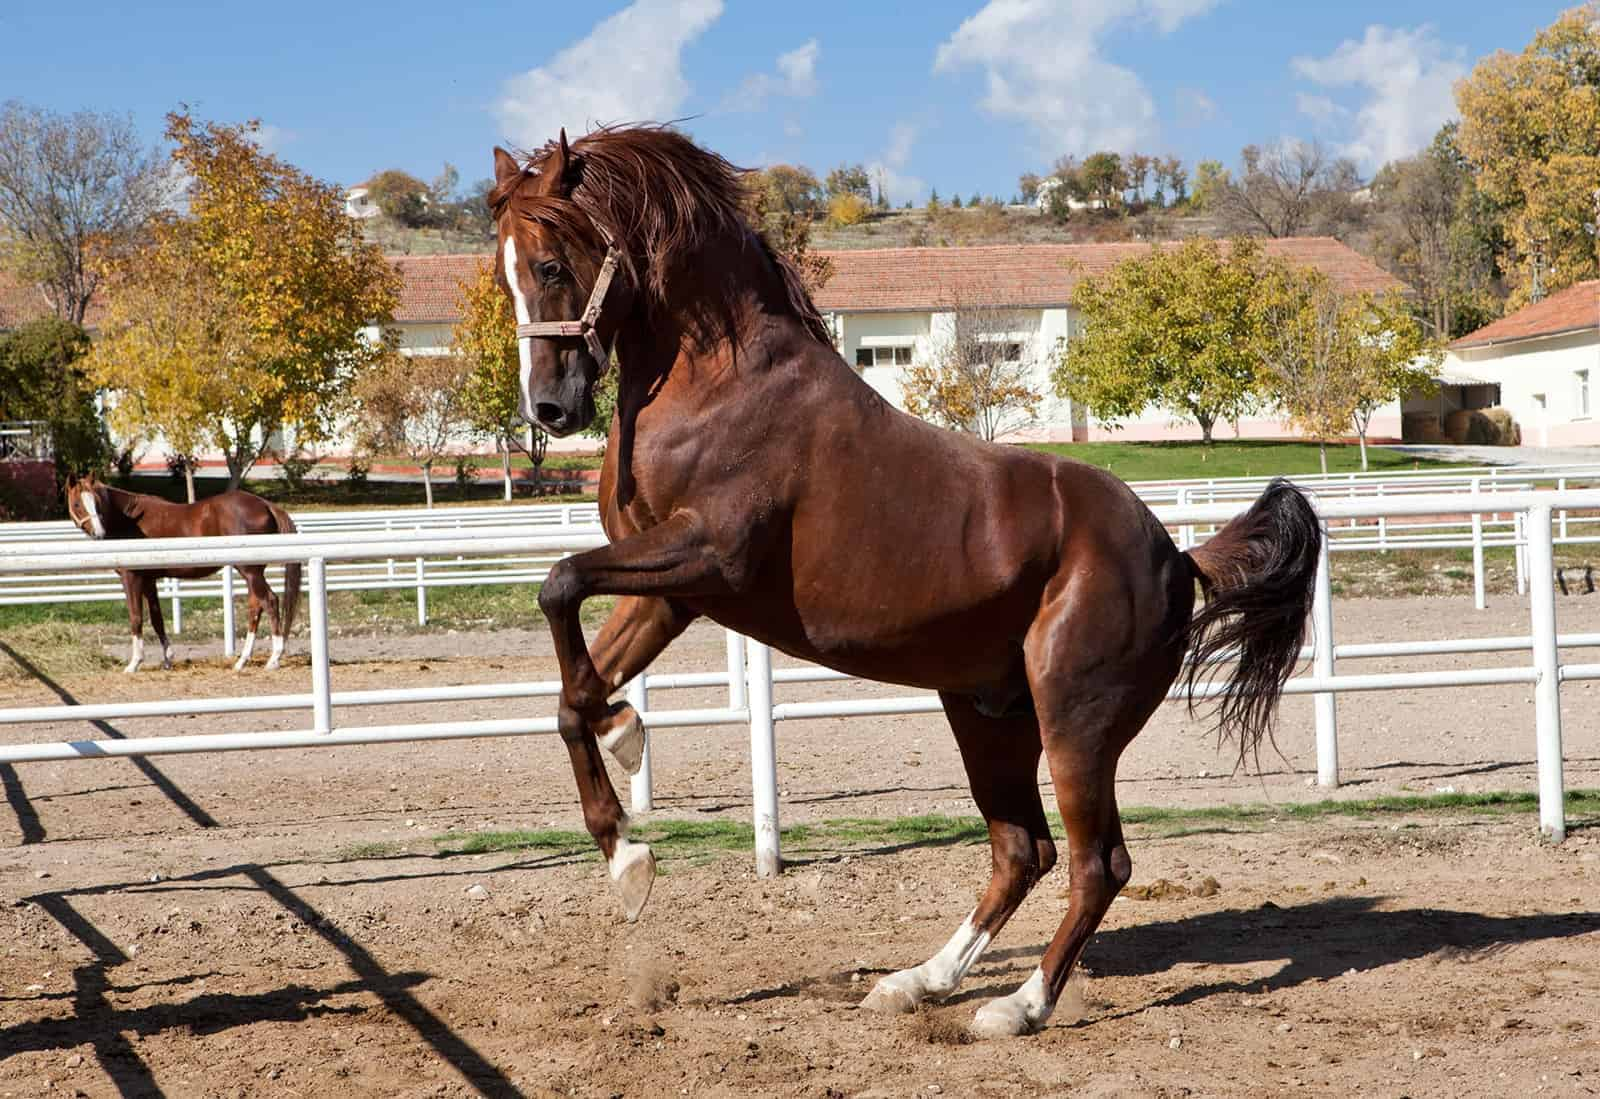 Why Is This Horse Rearing The Horse